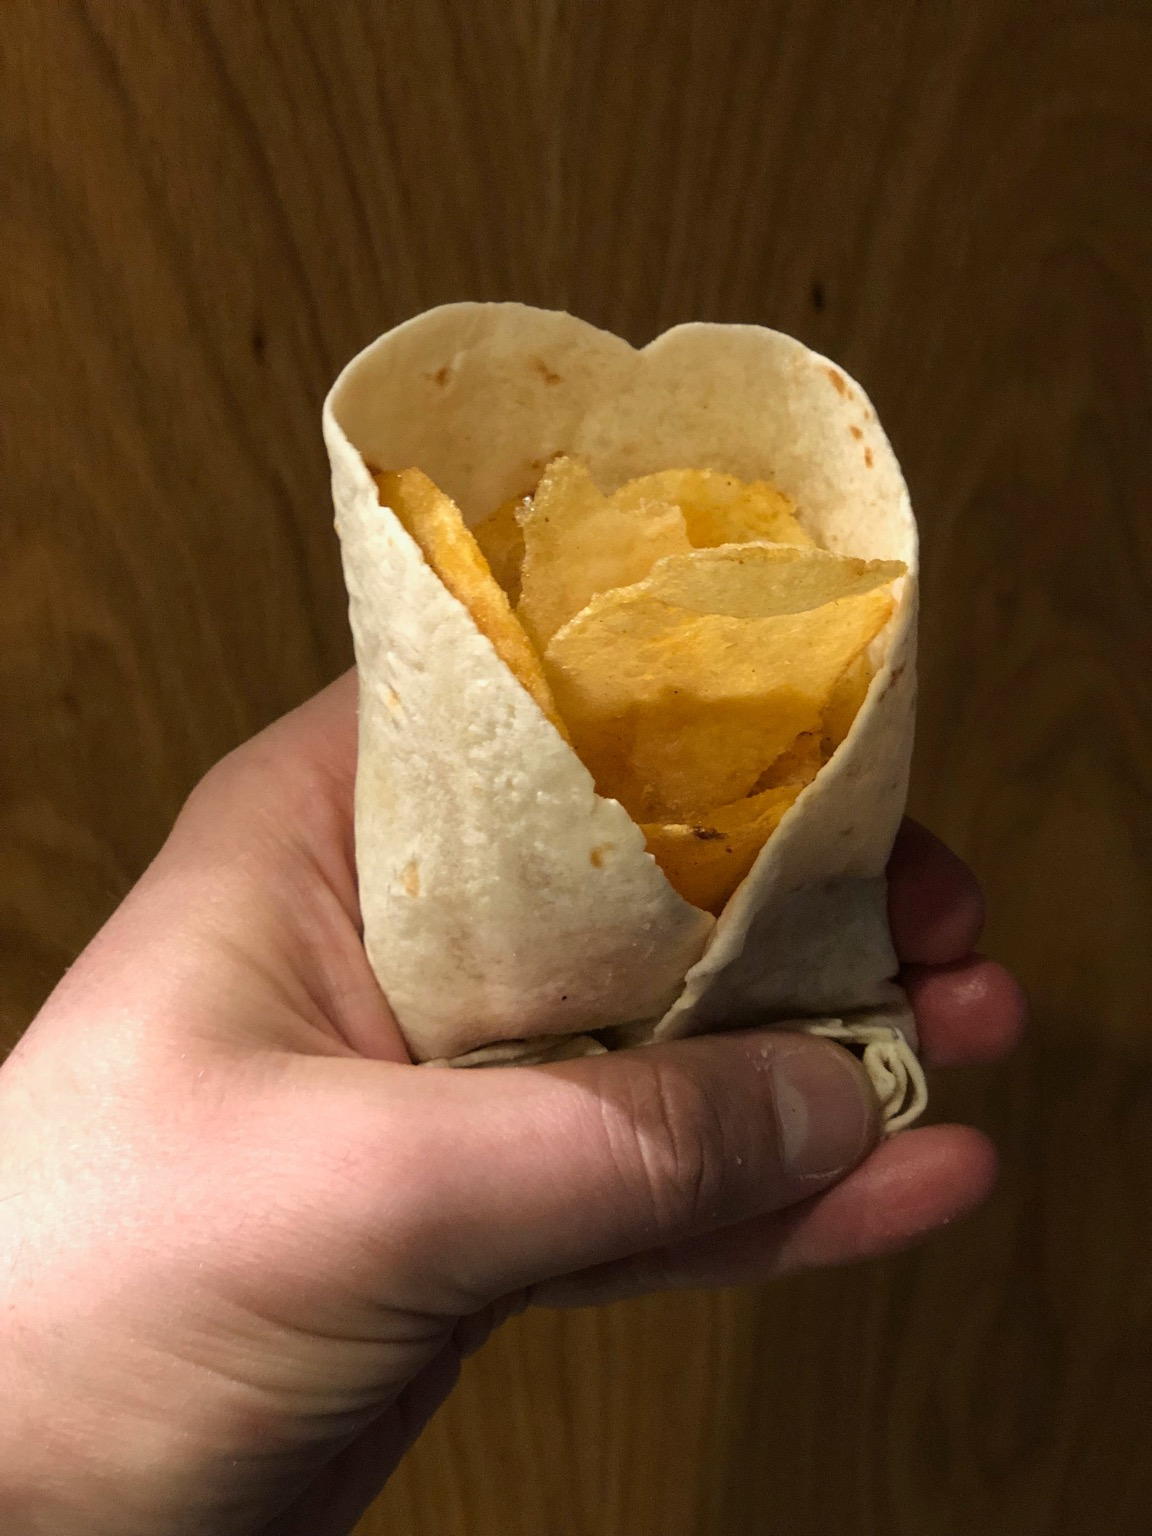 Potato crisps held in a tortilla wrap